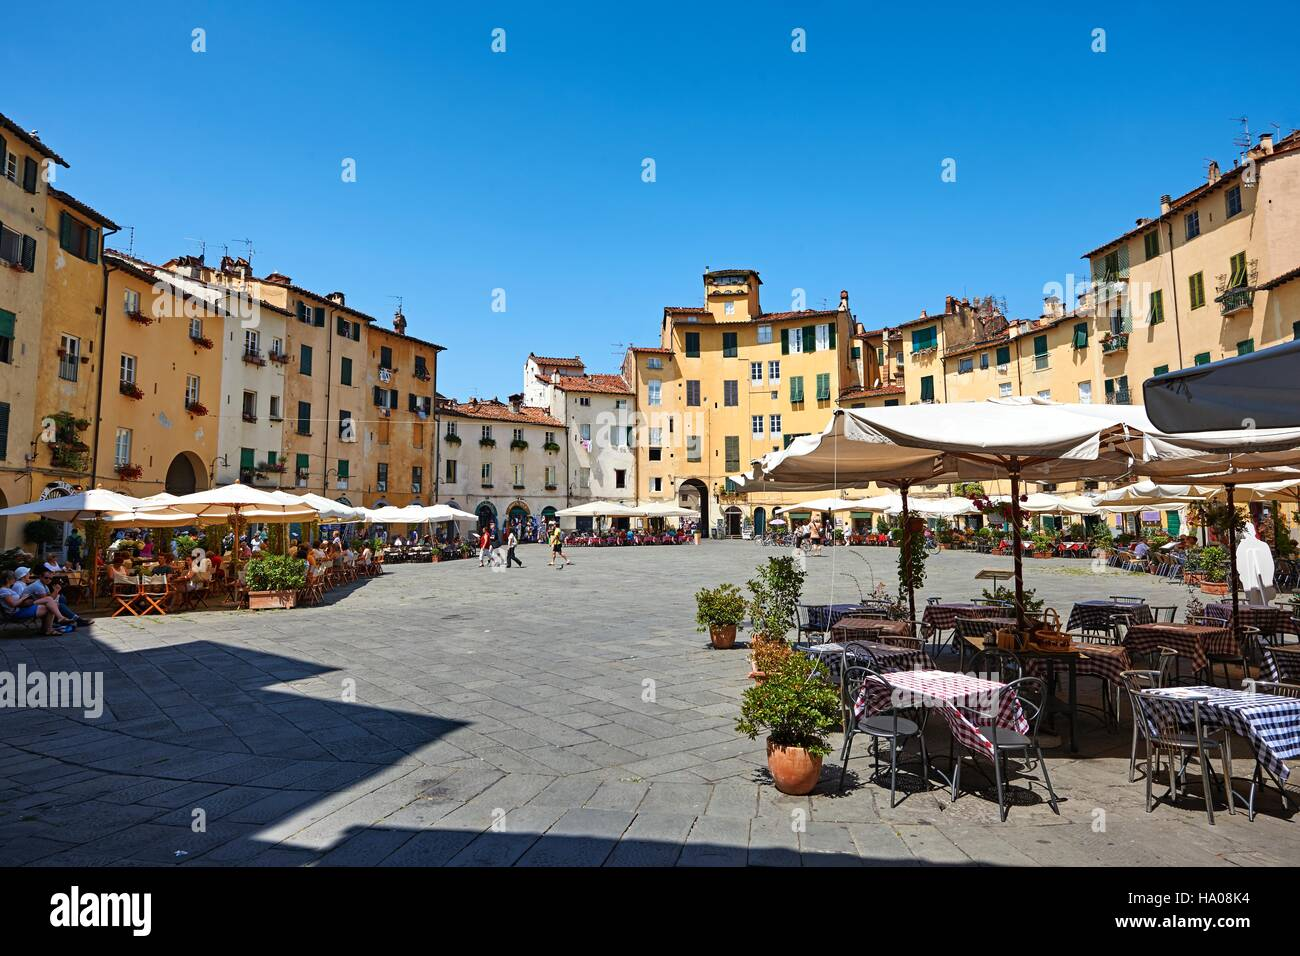 Piazza dell'Anfiteatro, Lucca, Tuscany, Italy - Stock Image